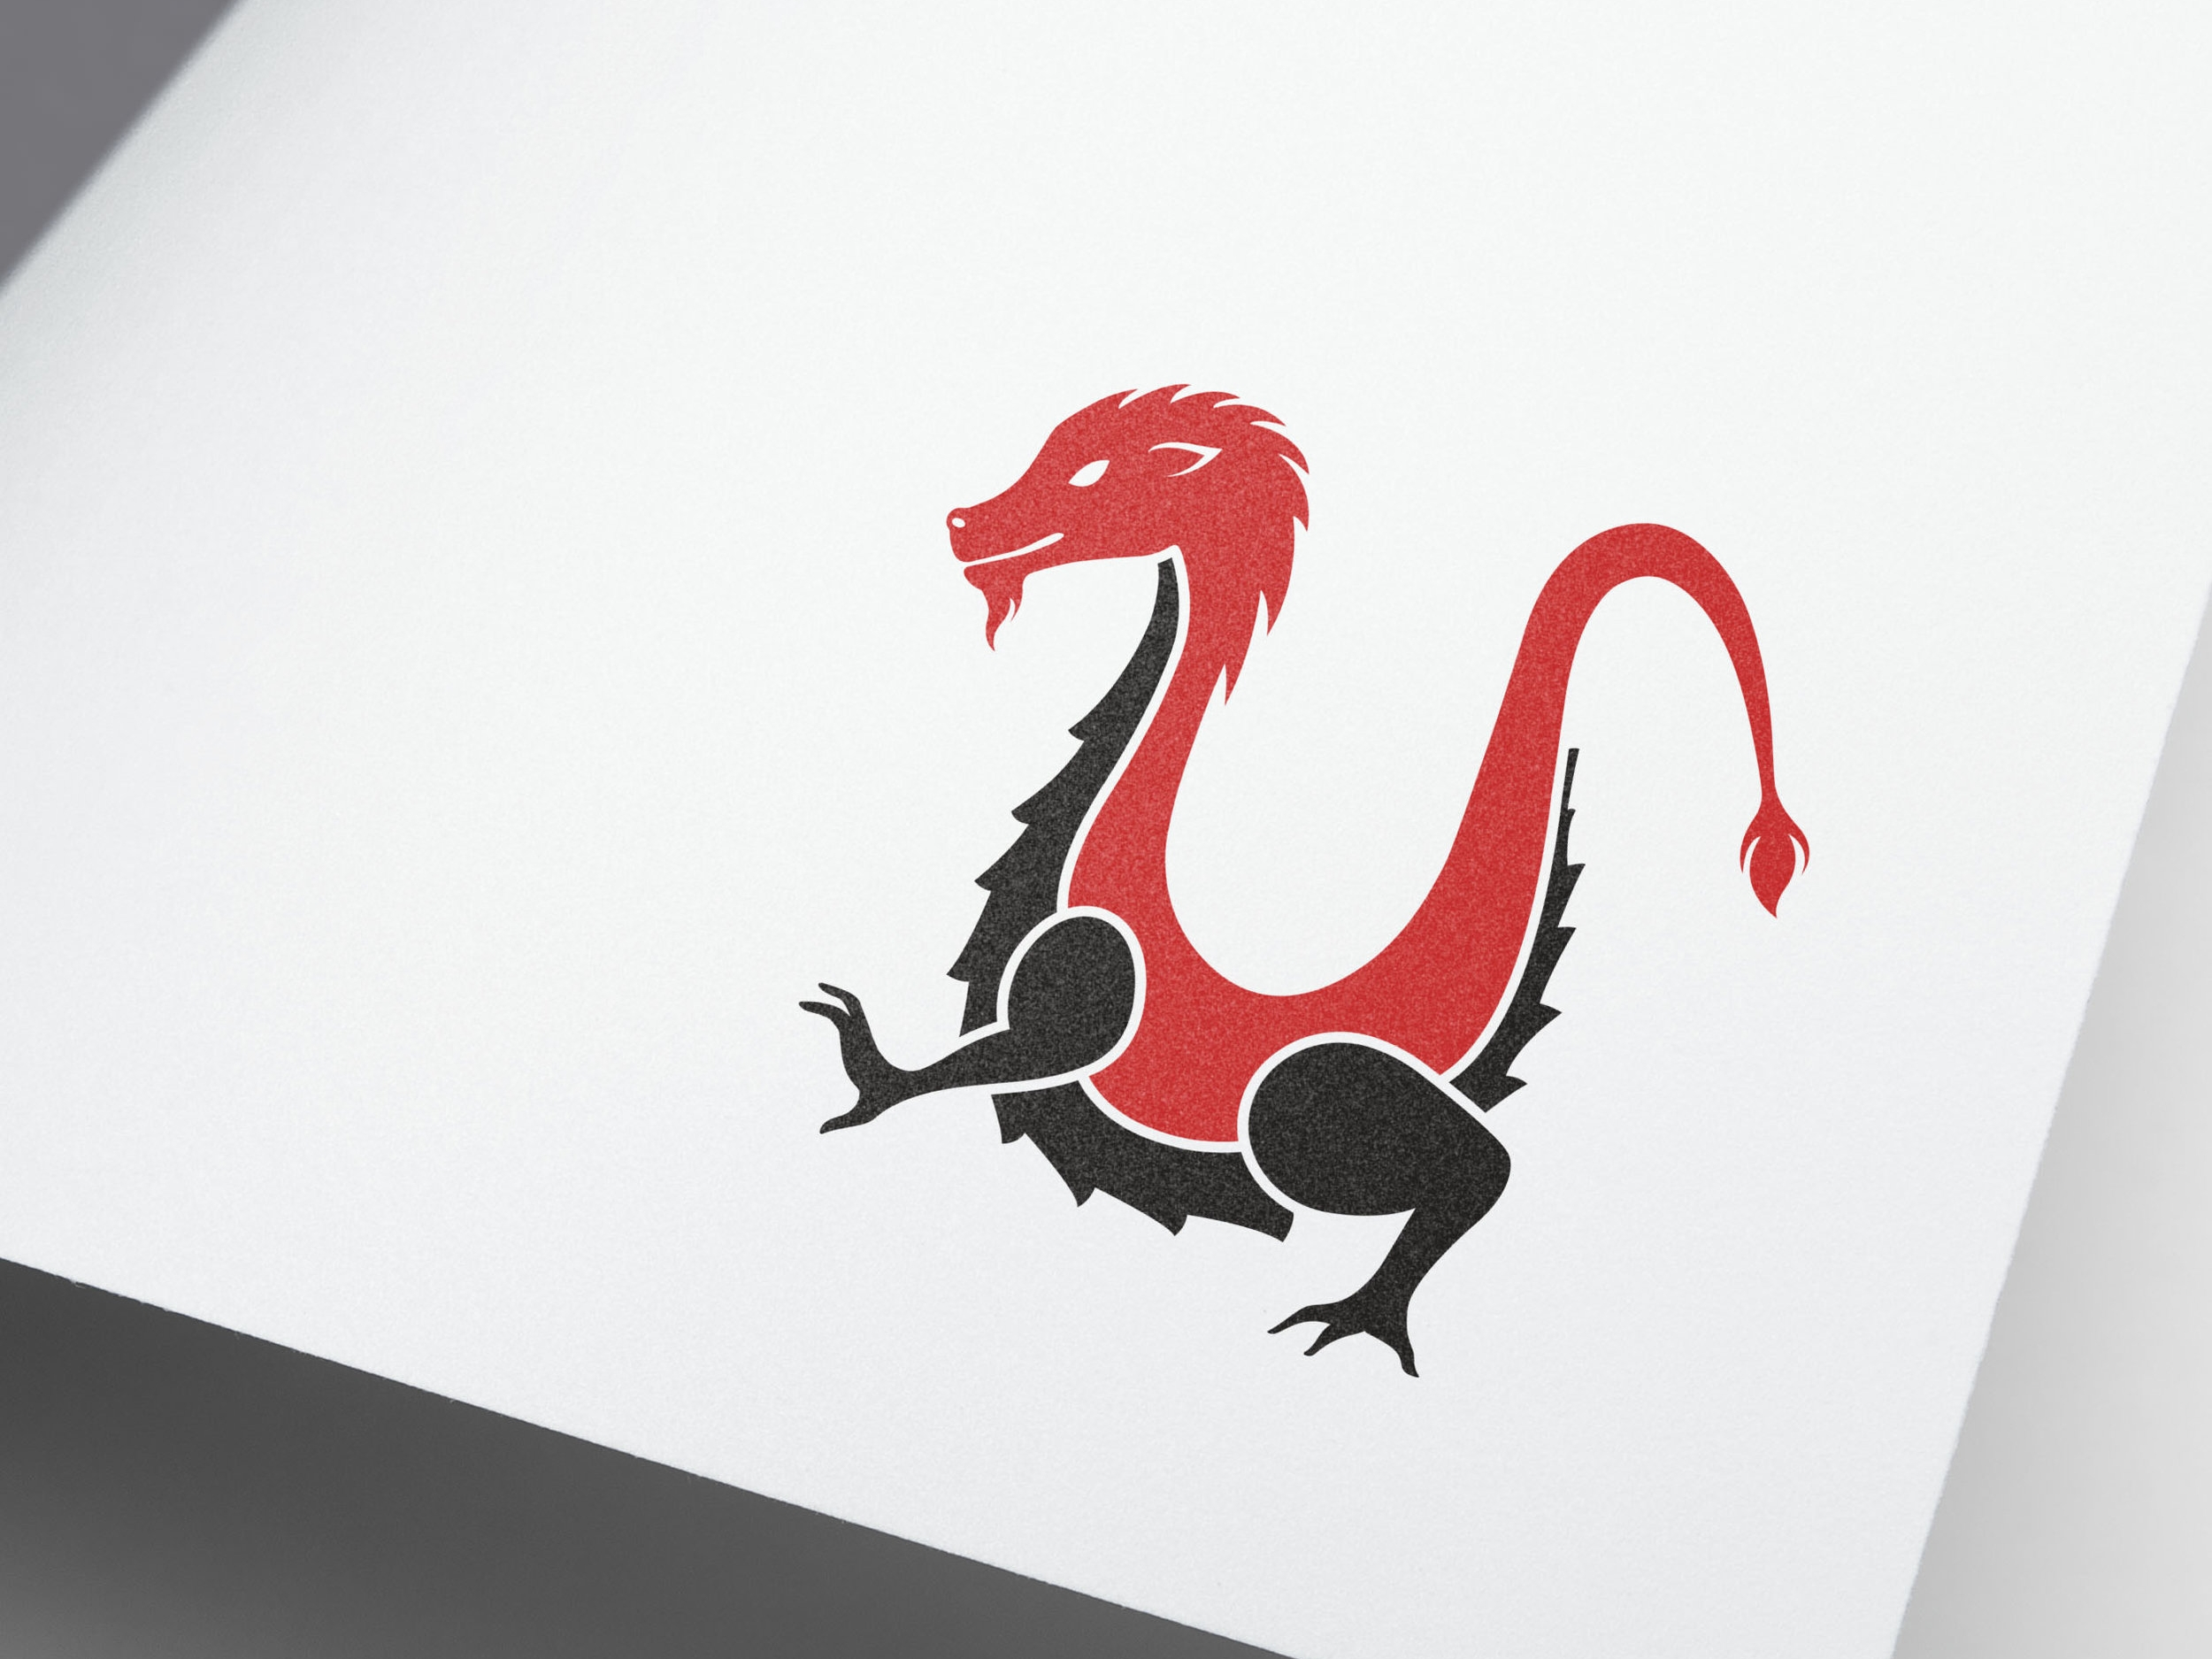 Udon Dragon logo design.